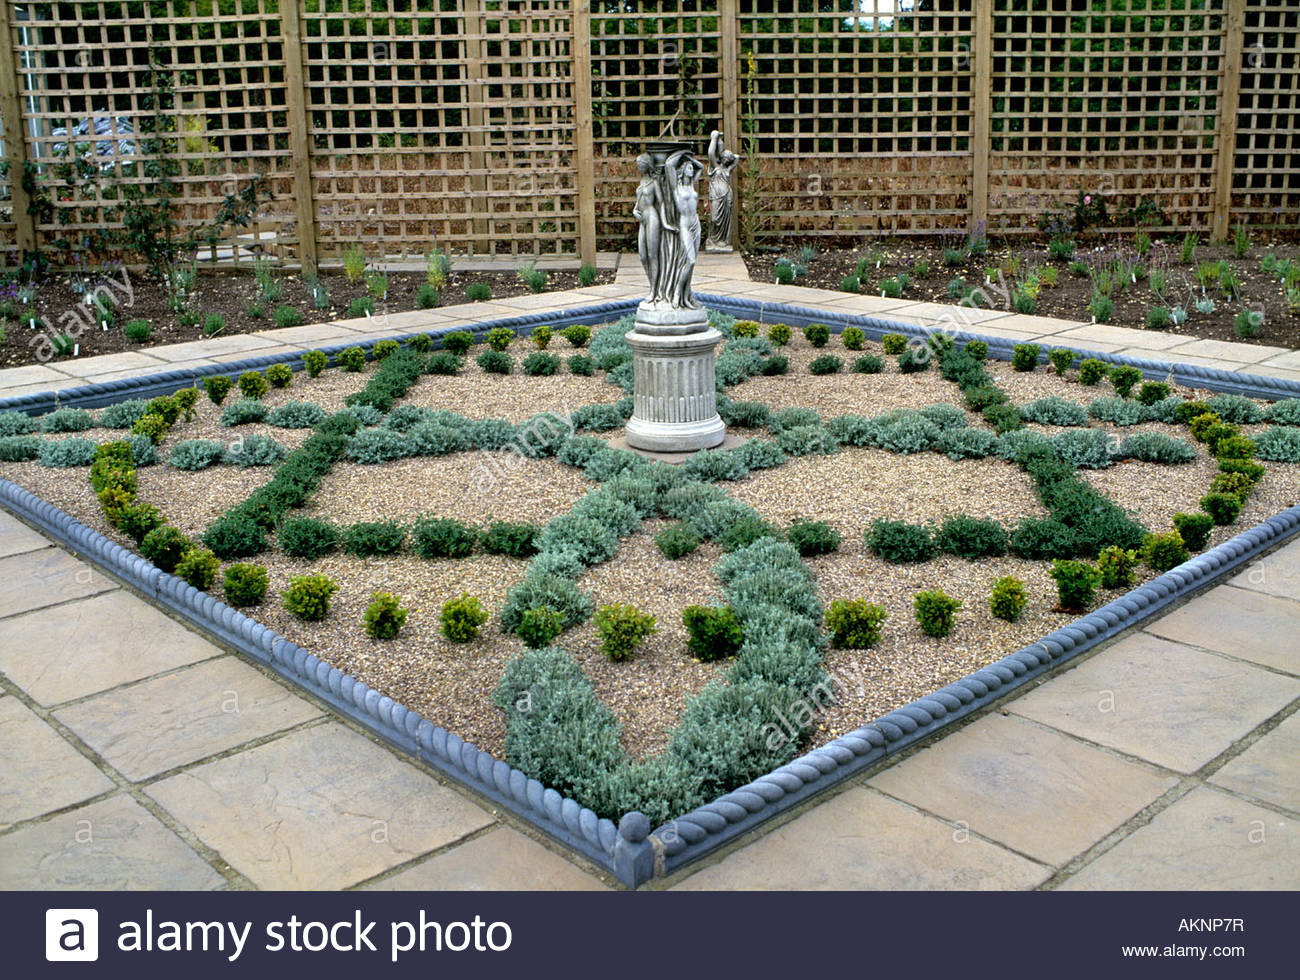 Newly built planted small herb garden with knot design of for Knot garden designs herbs